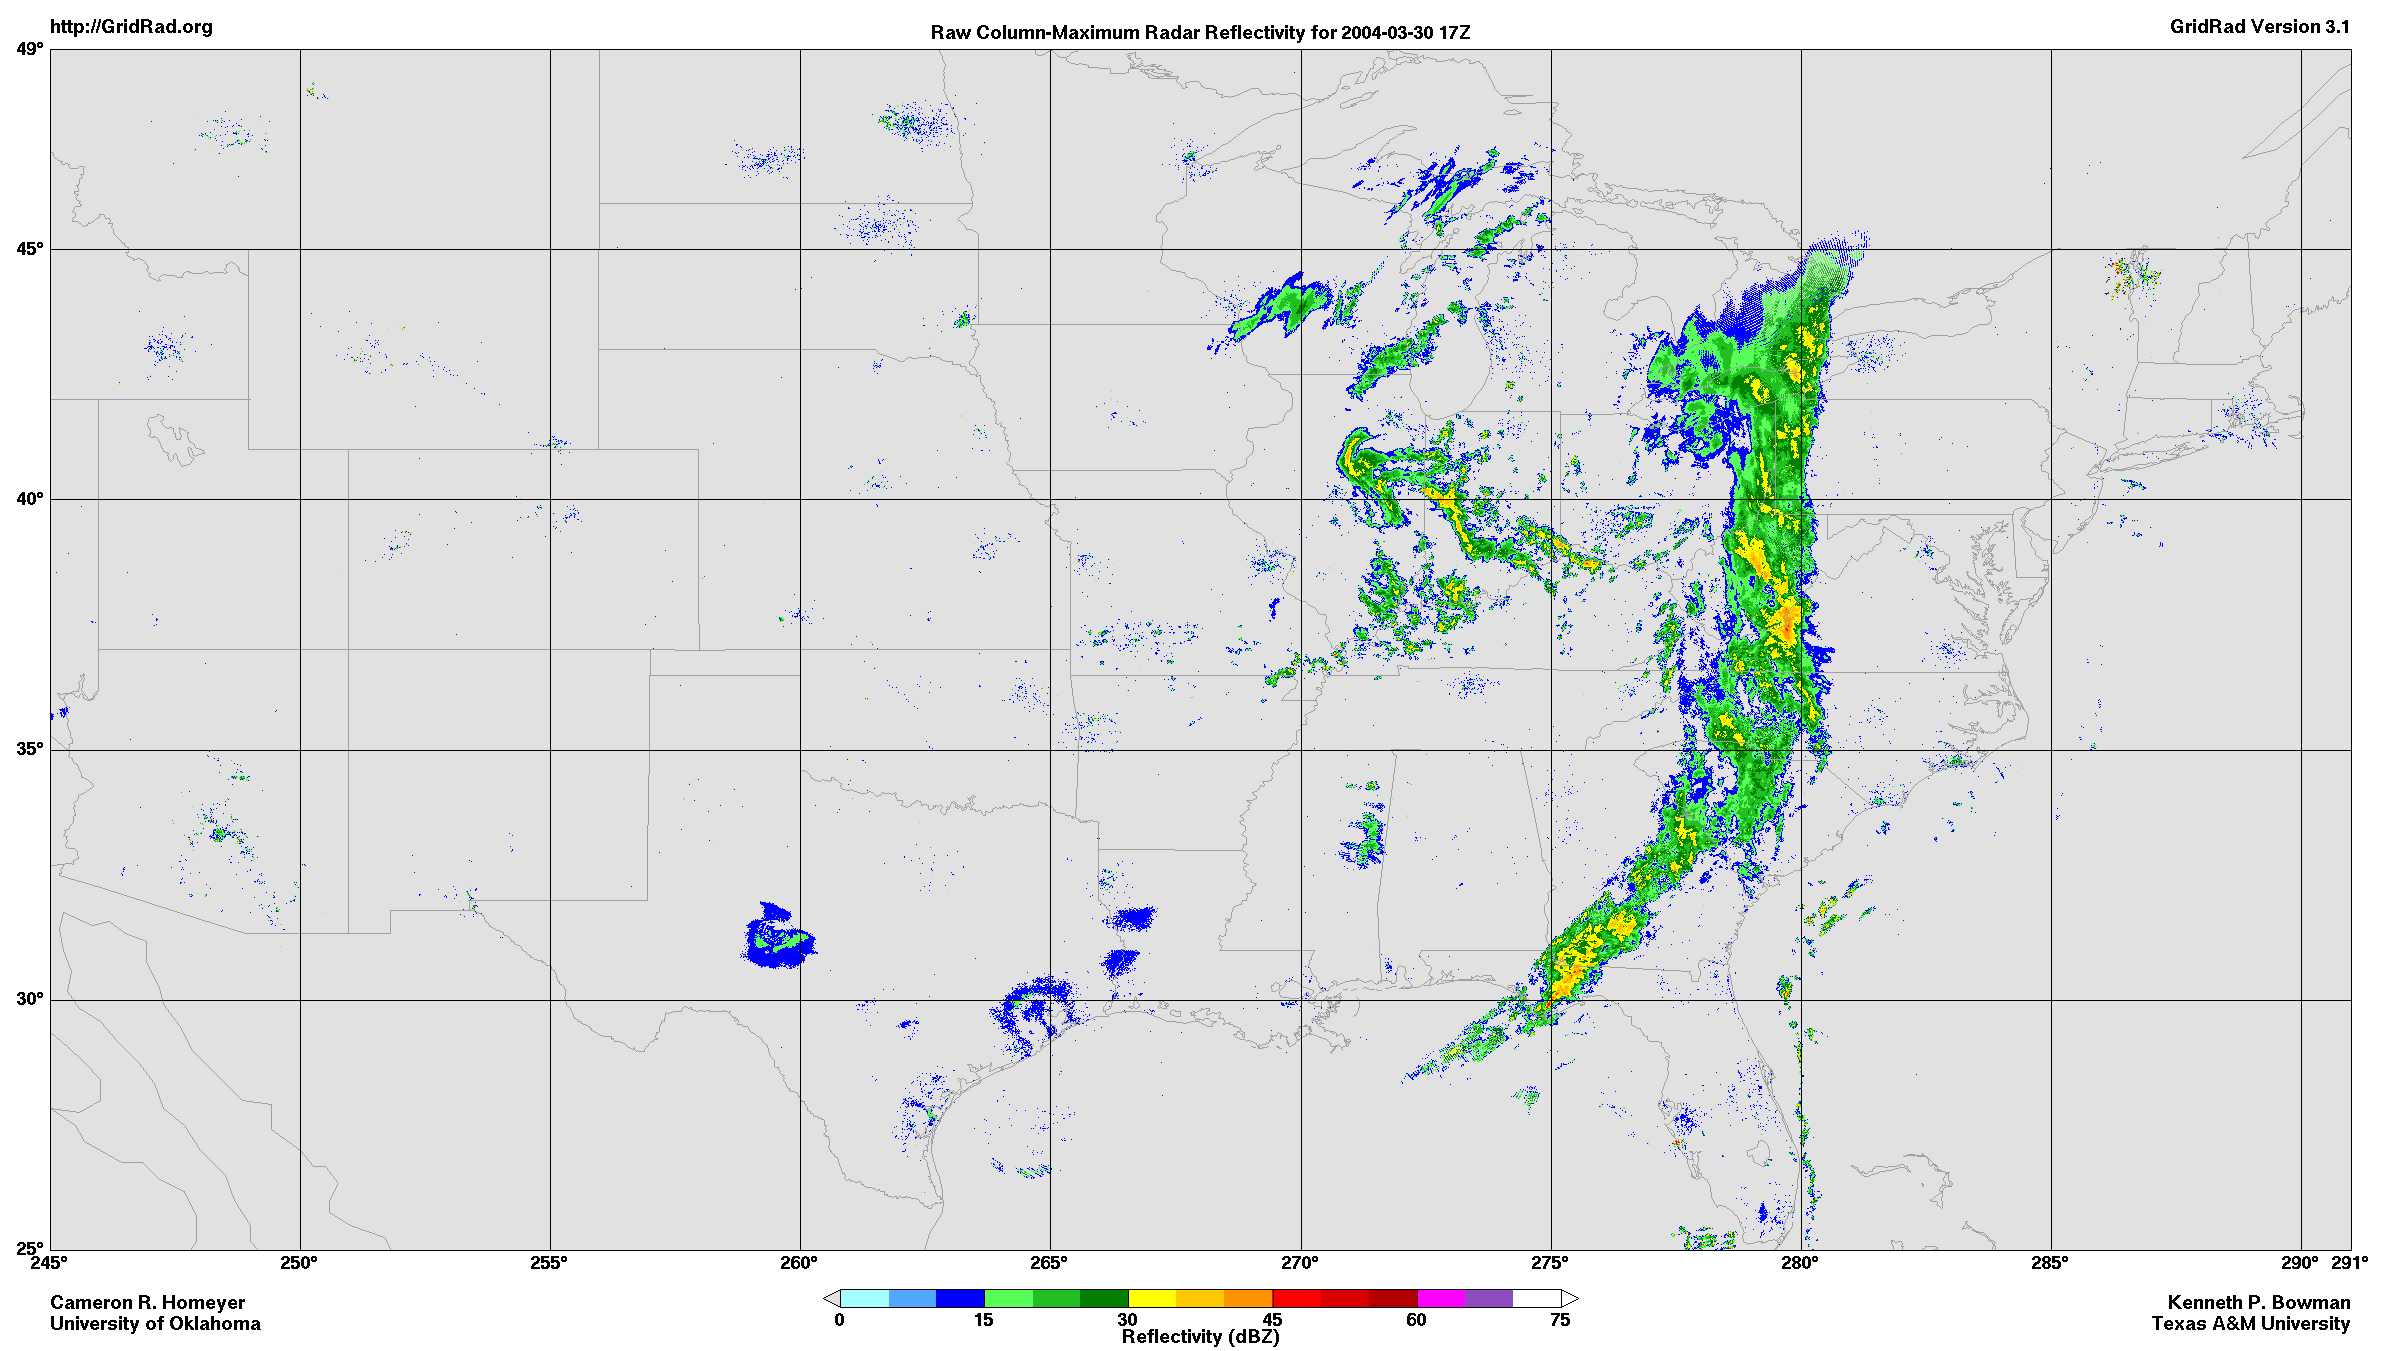 This image is an example of a radar reflectivity map created using GridRad data.